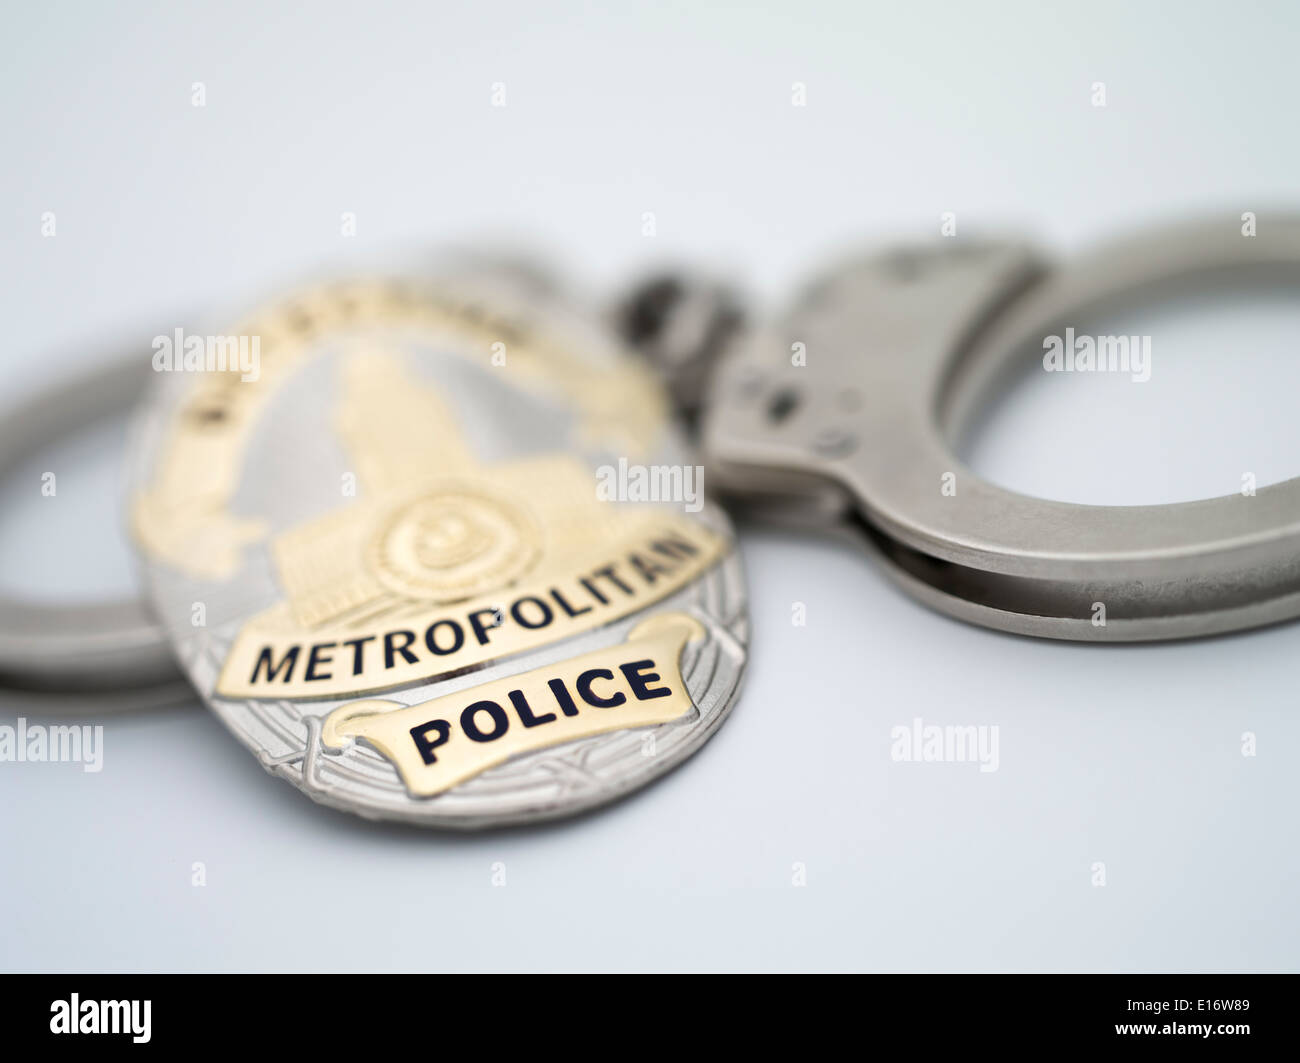 Metropolitan Police Detective Shield with Smith & Wesson Police issue handcuffs - Stock Image